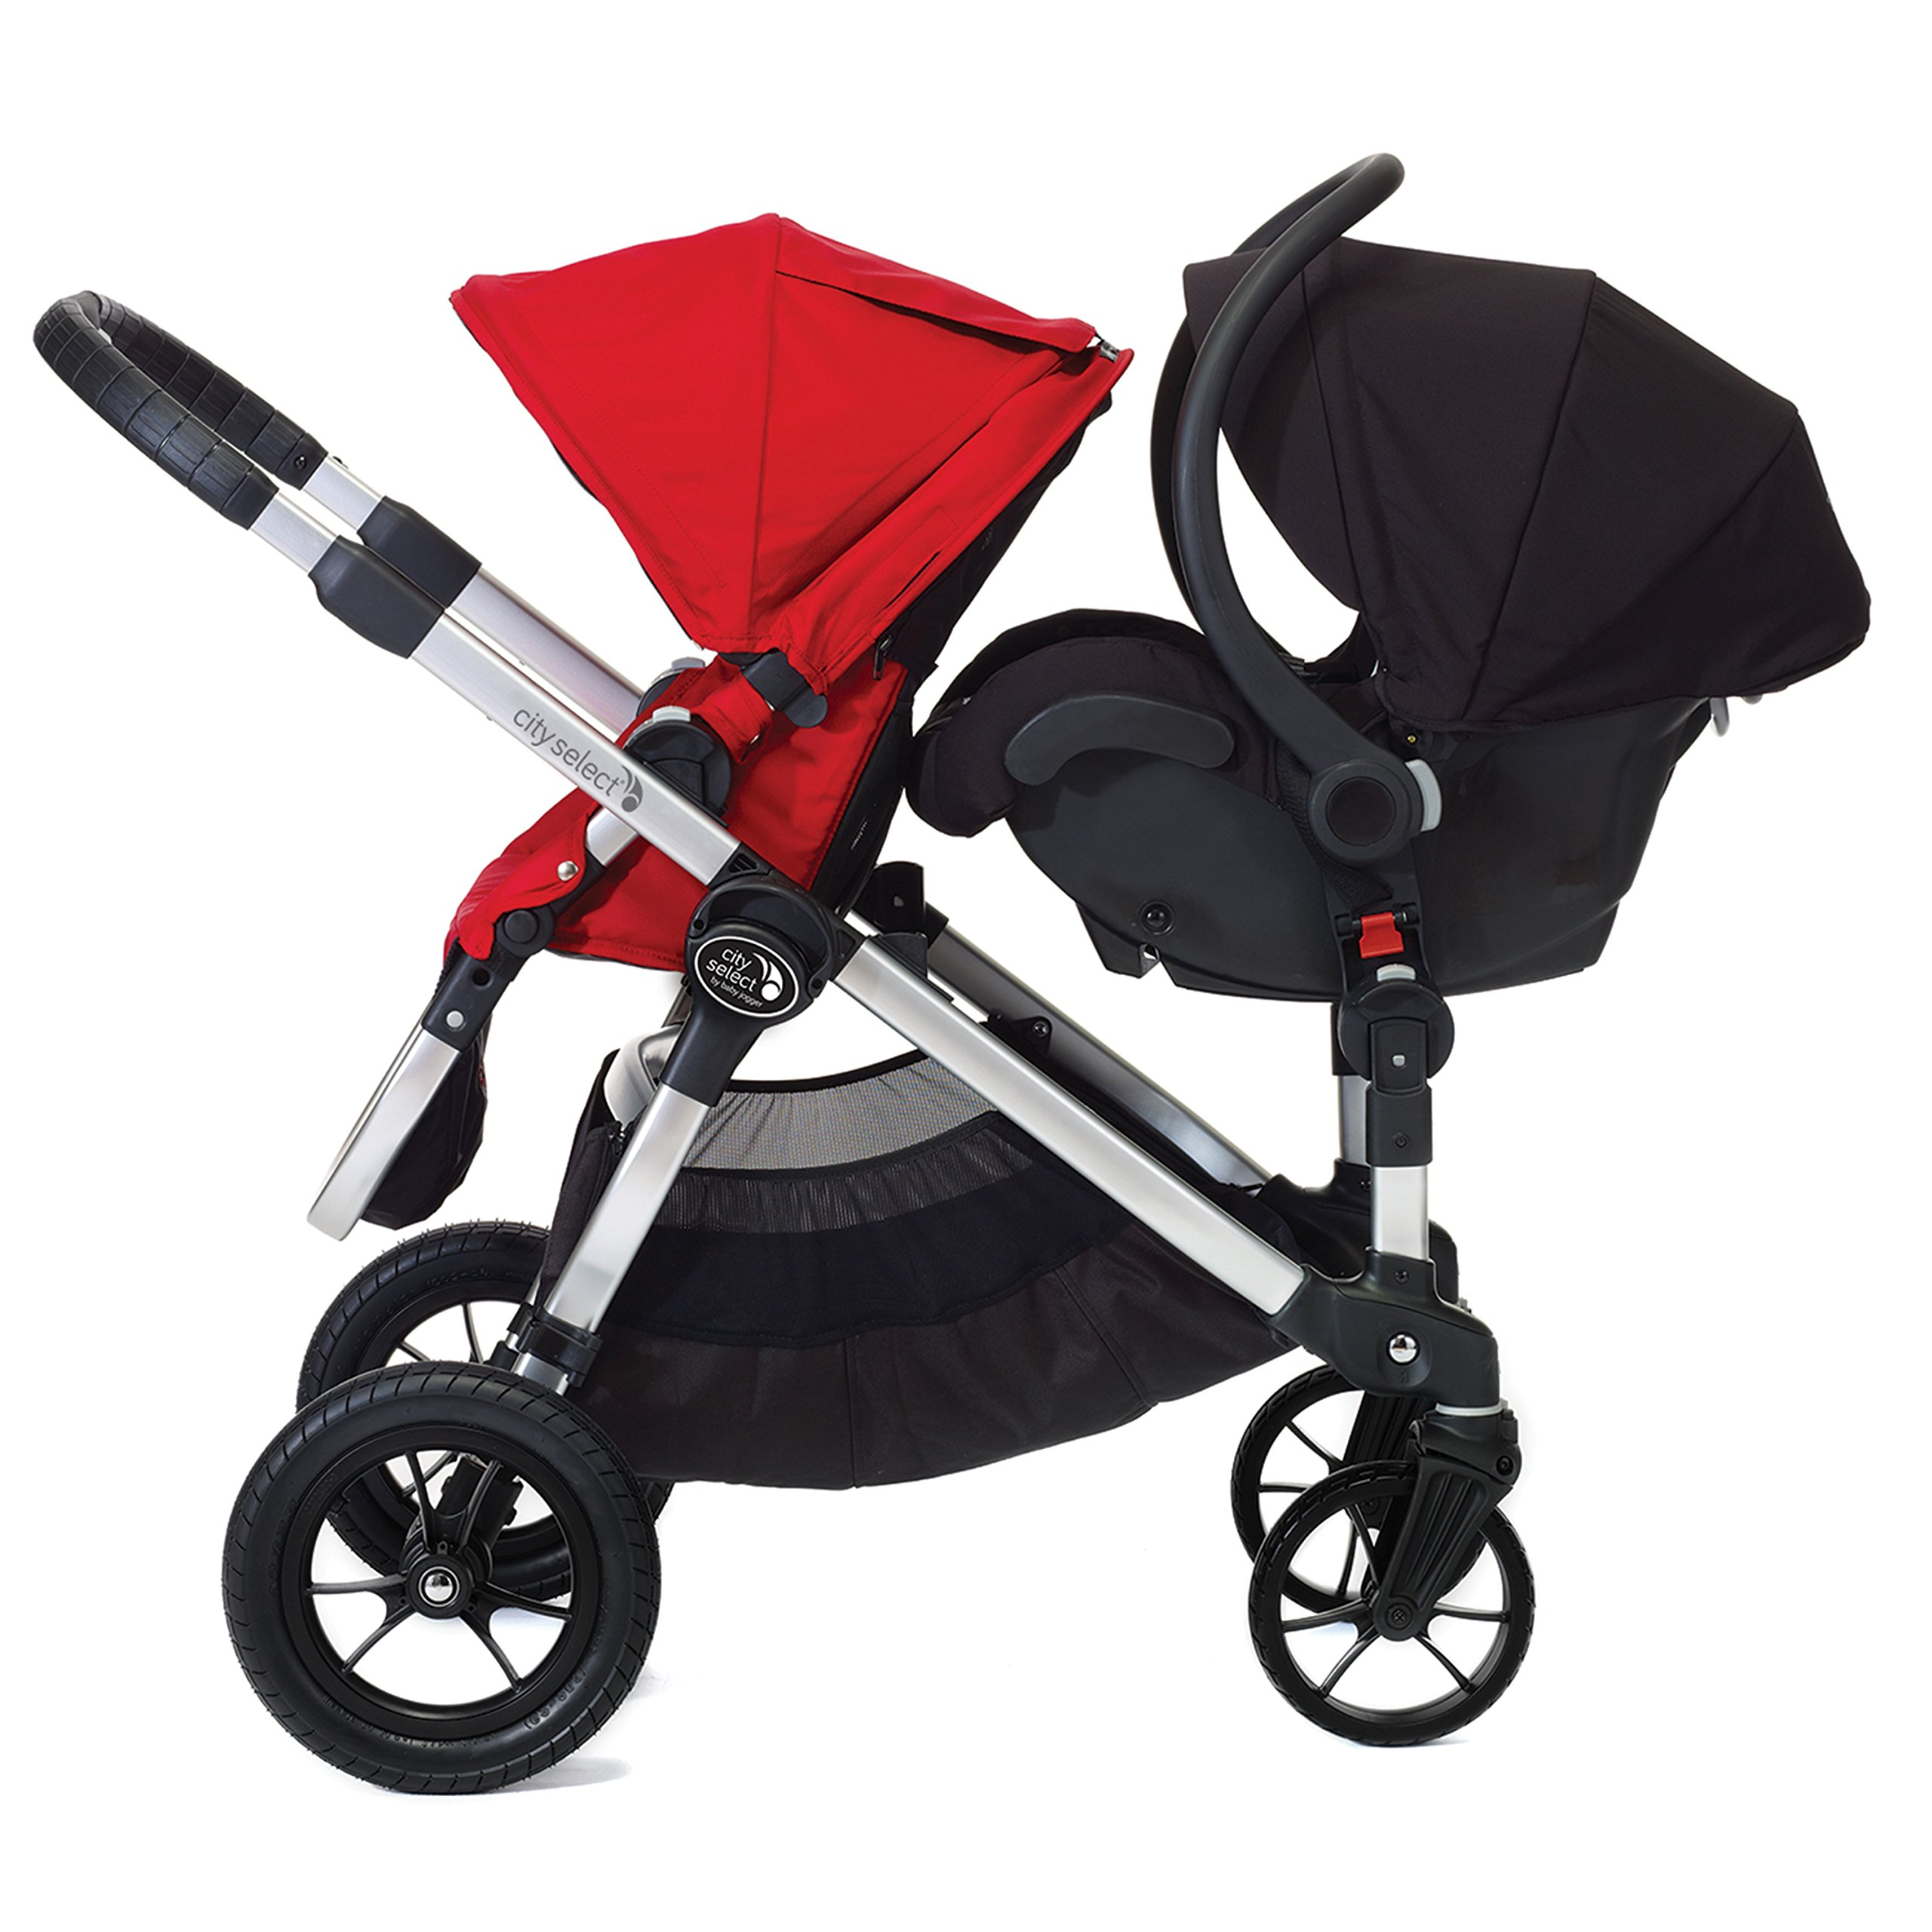 Baby Jogger City Select Second Seat Adaptors Stroller Grey by Baby Jogger (Image #3)